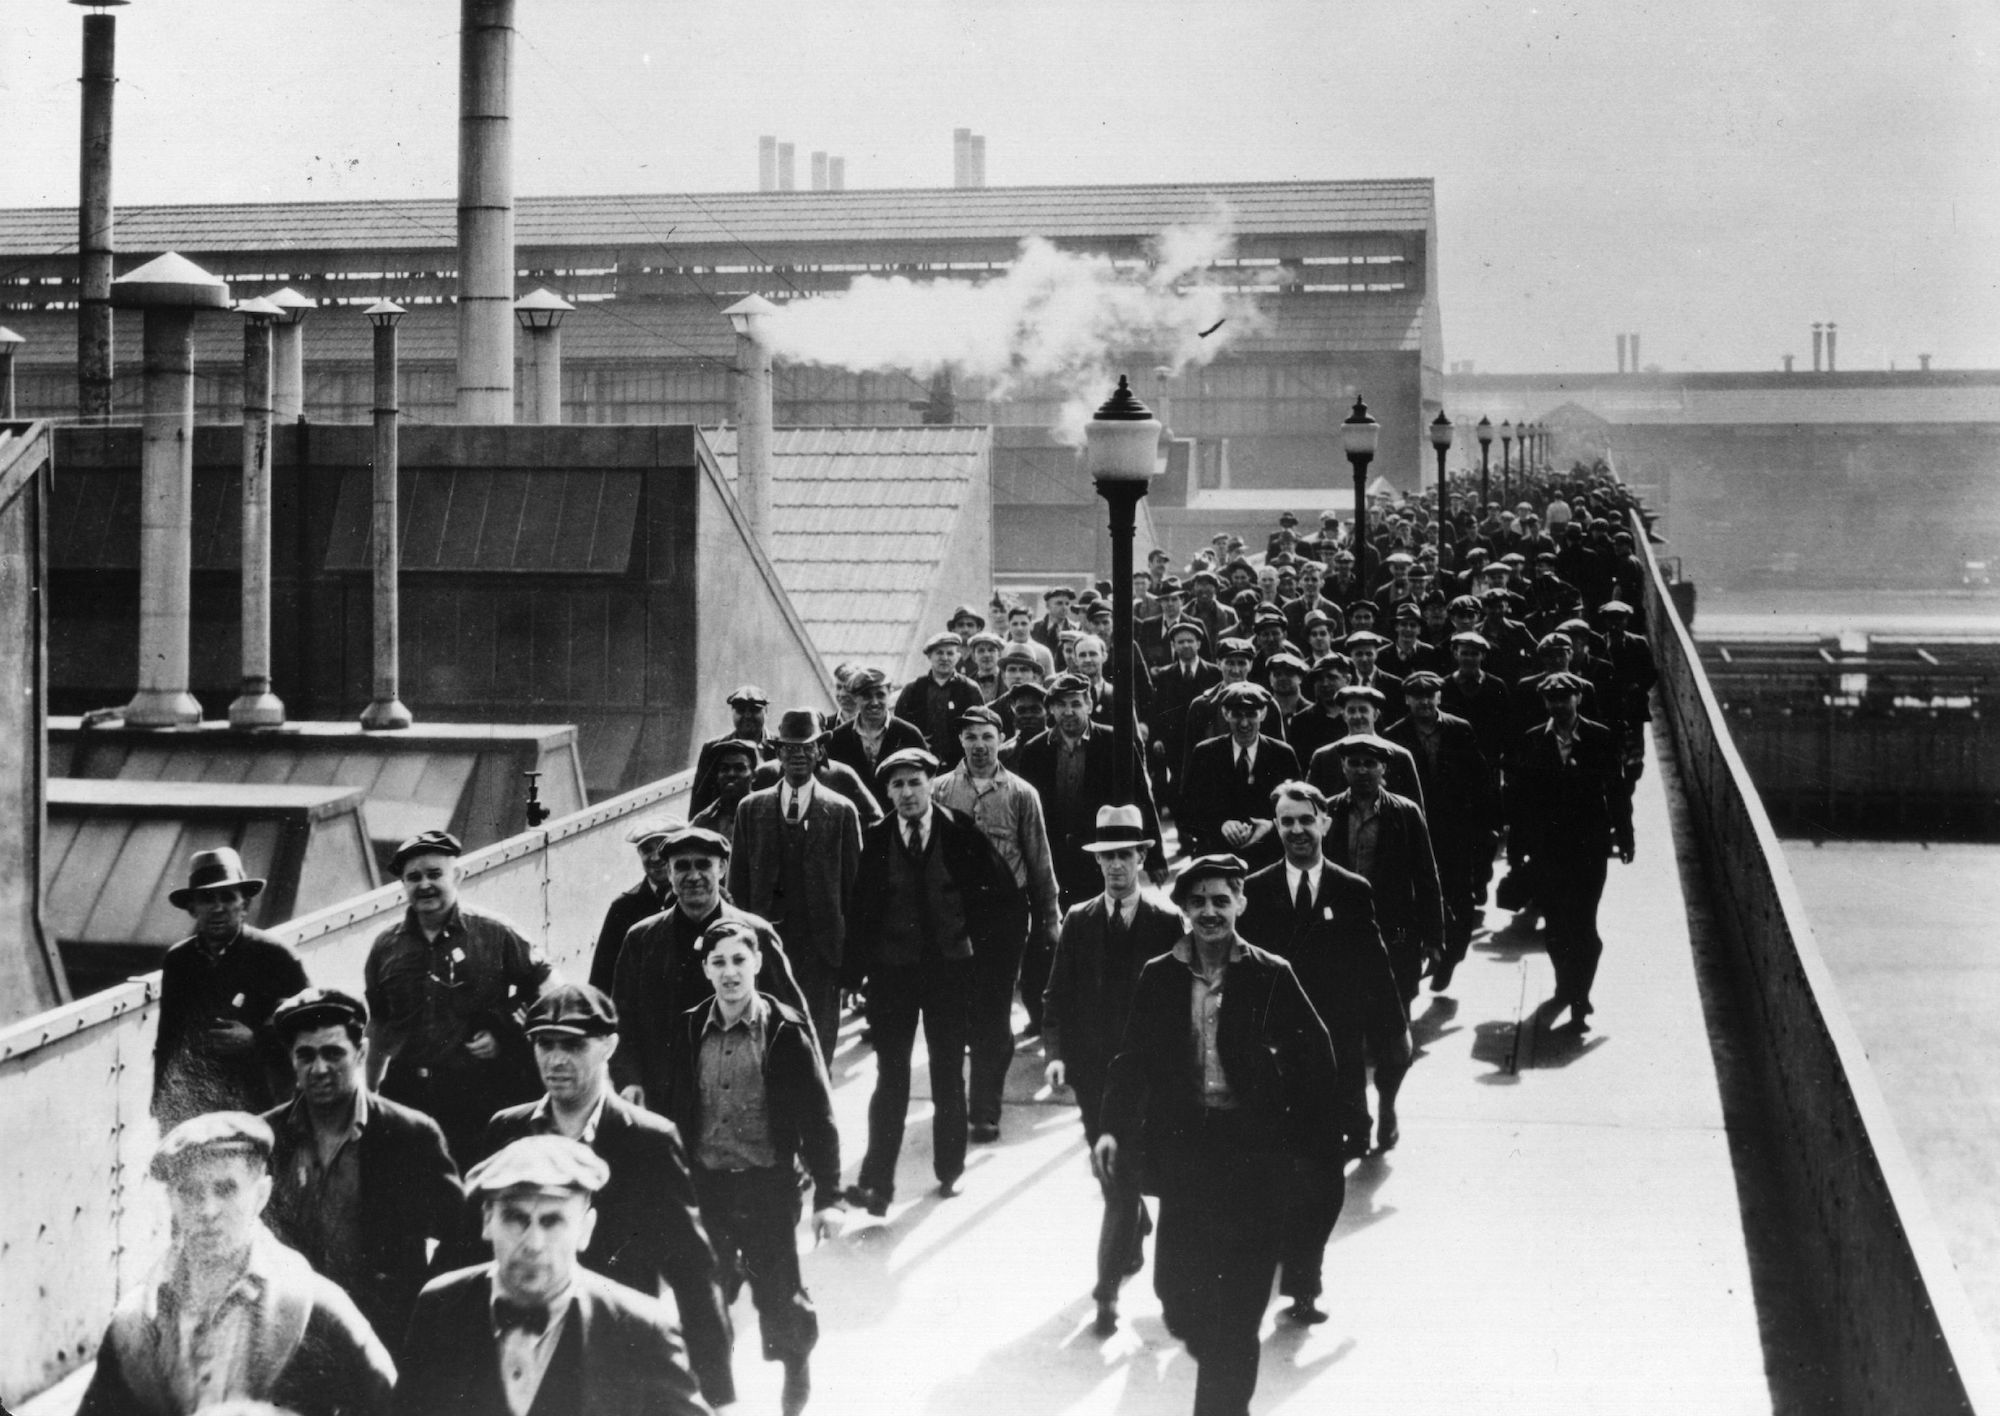 Workers leave the Detroit Ford Motor works circa 1930